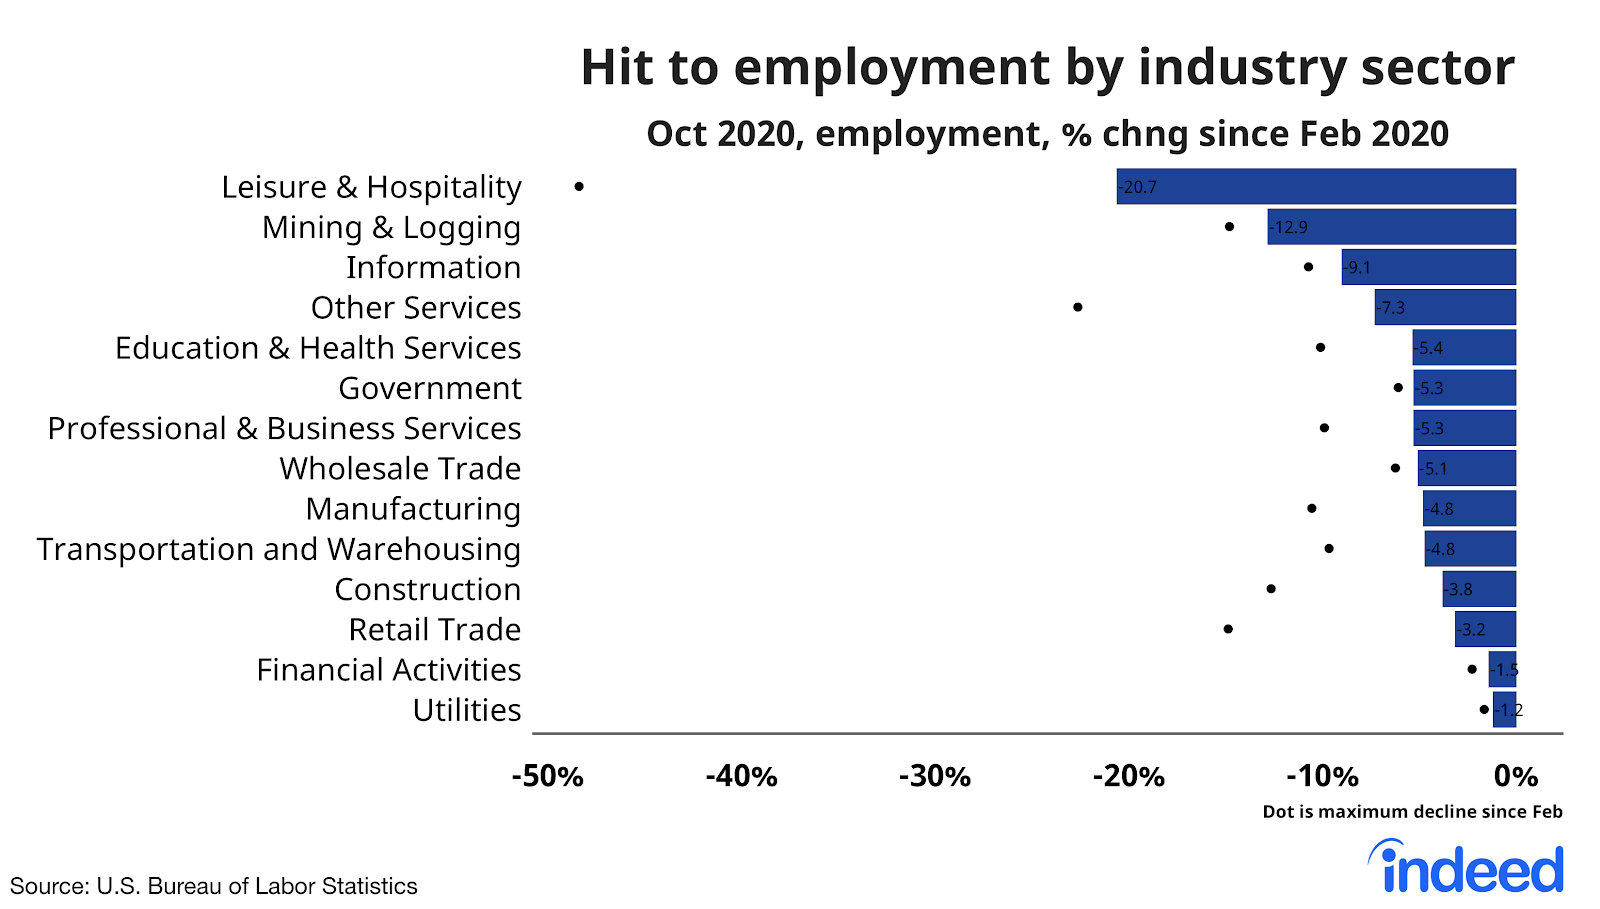 Bar graph showing hit to employment by industry sector